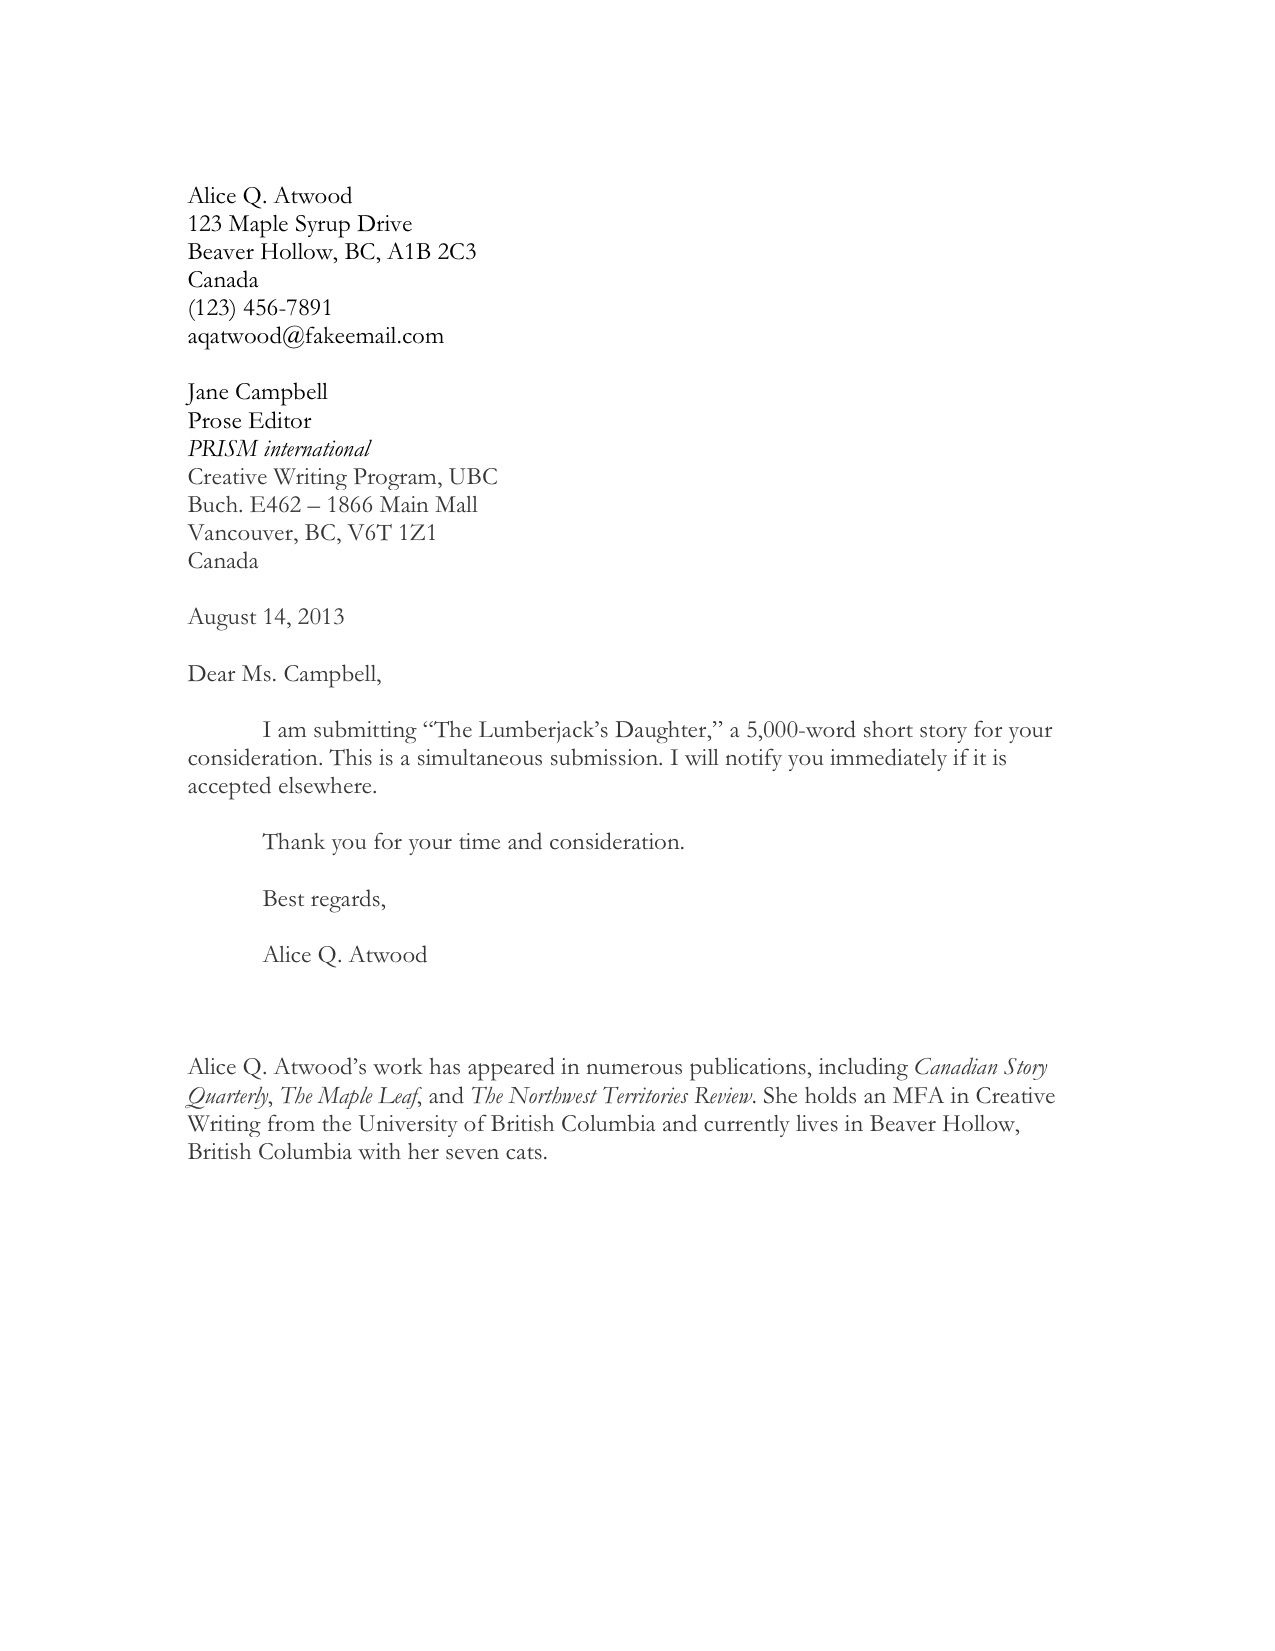 cover letter example prism international cover letter example - Resume And Cover Letter Uwo